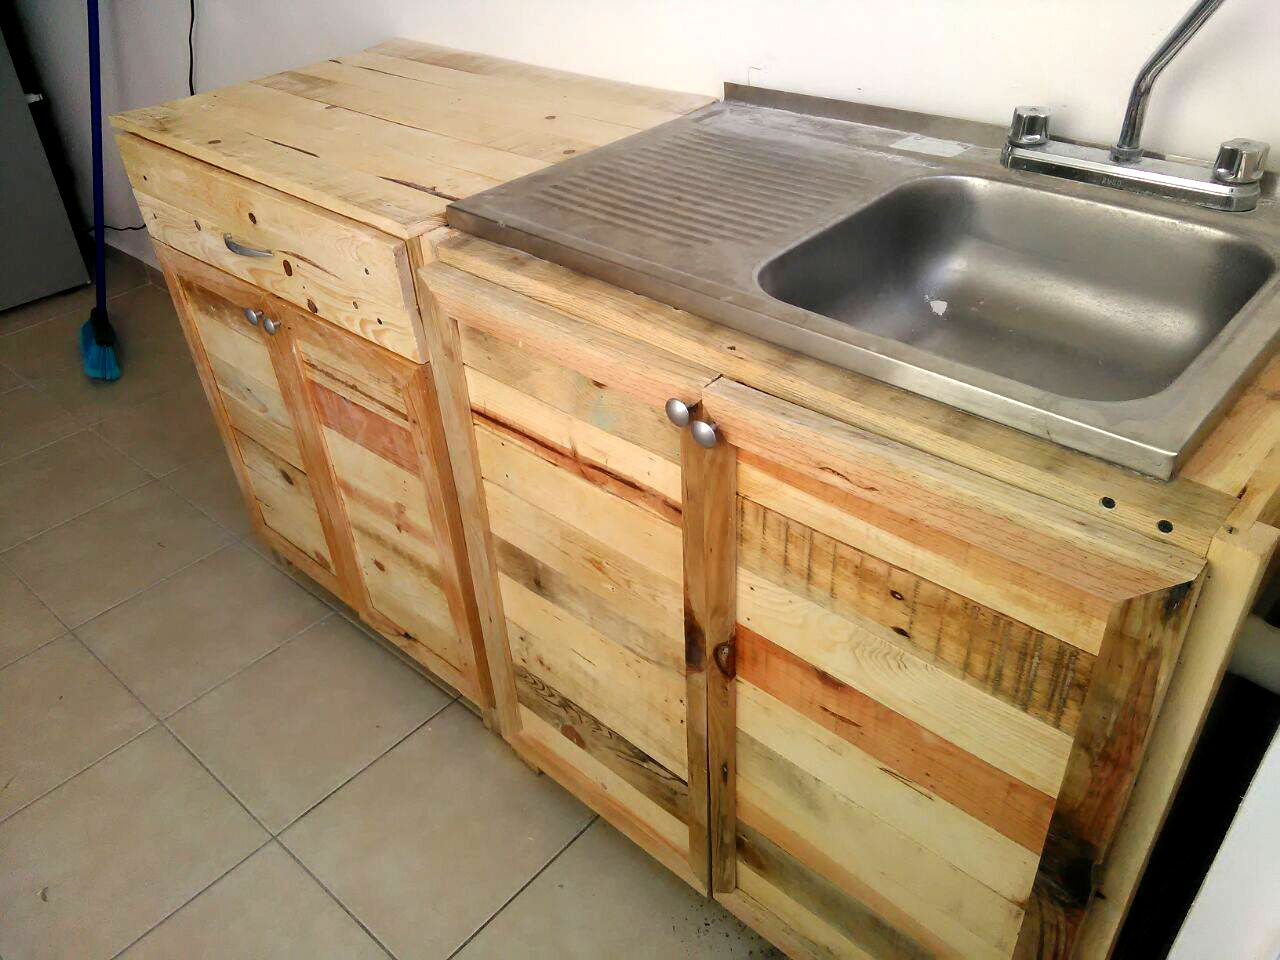 kitchen sink cabinets Kitchen wholly made from Recycled Pallets